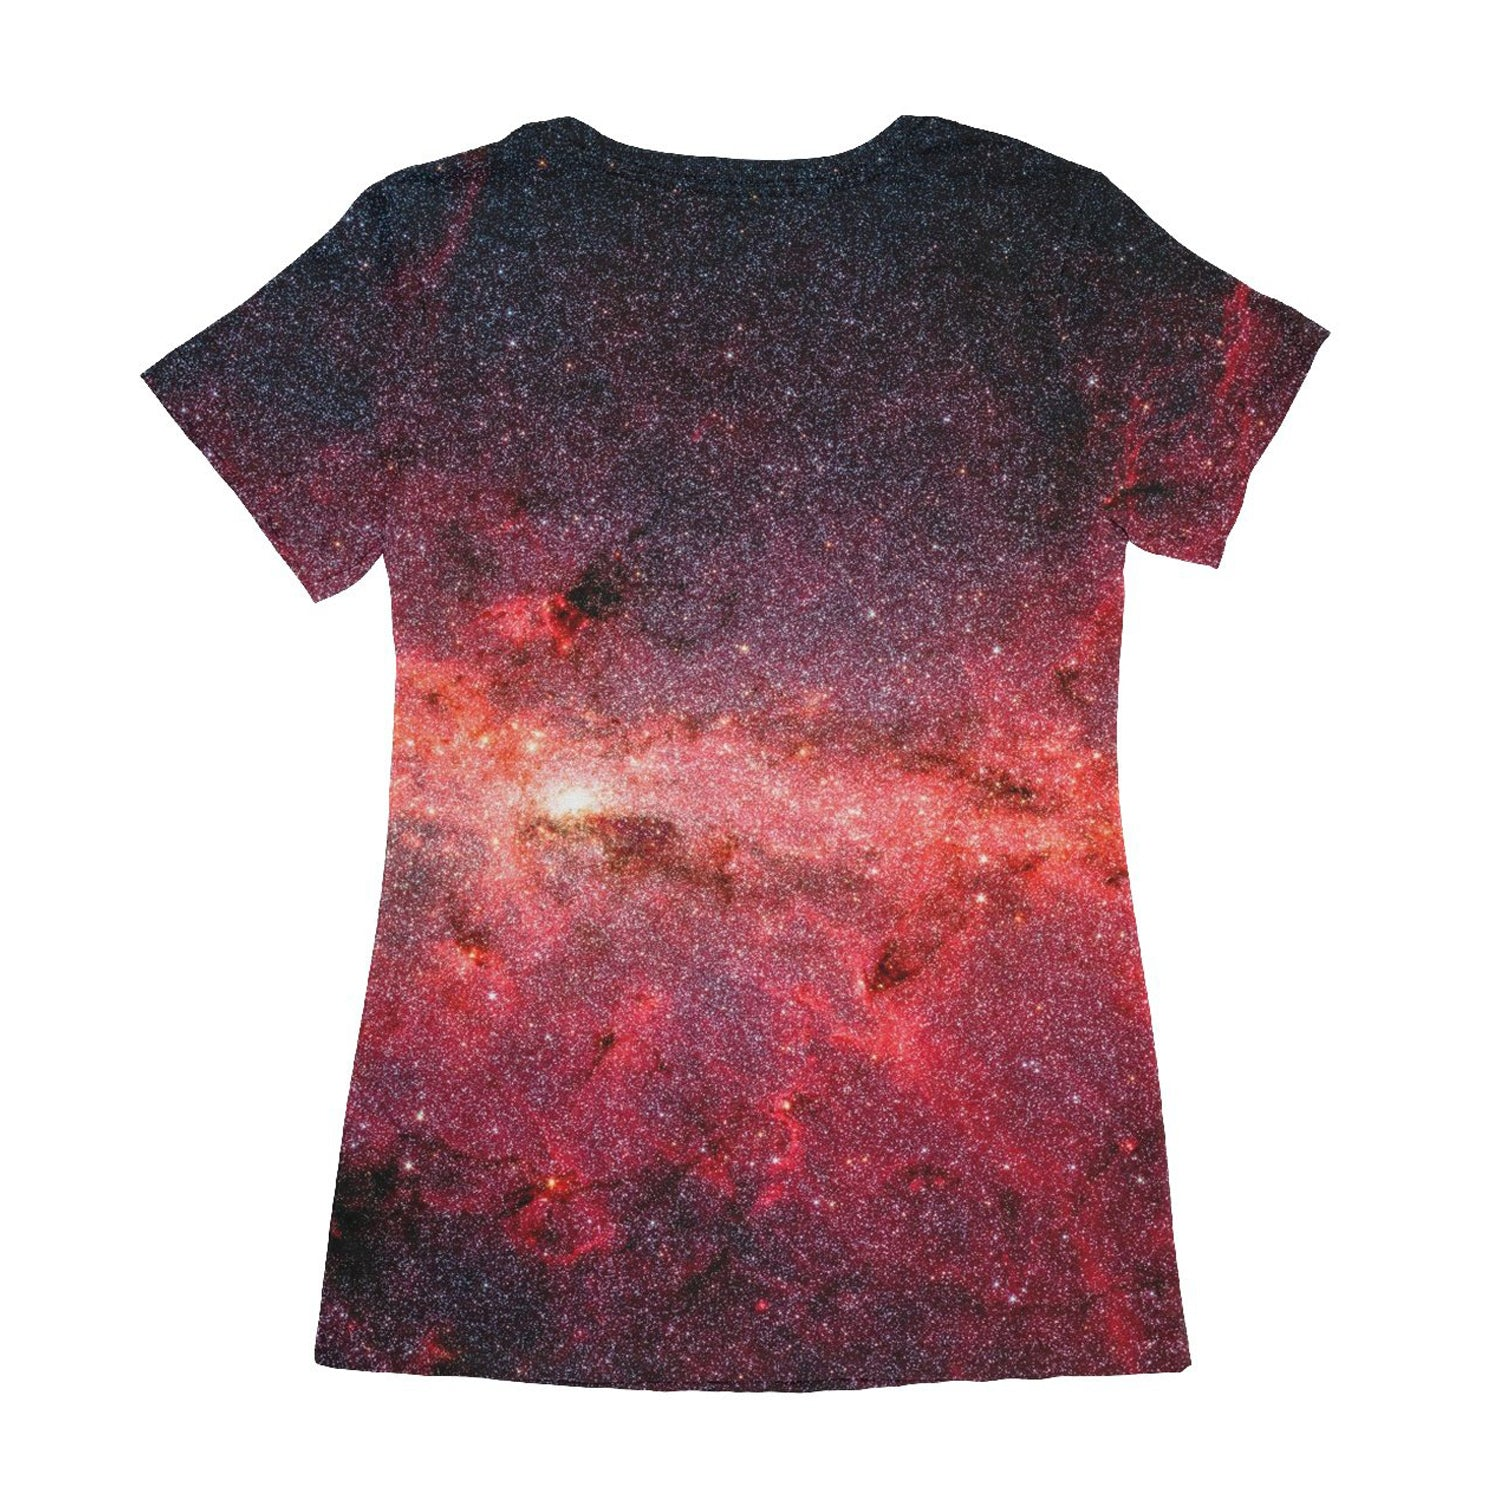 the back of an unusual teeshirt for women showing the milky way in infrared